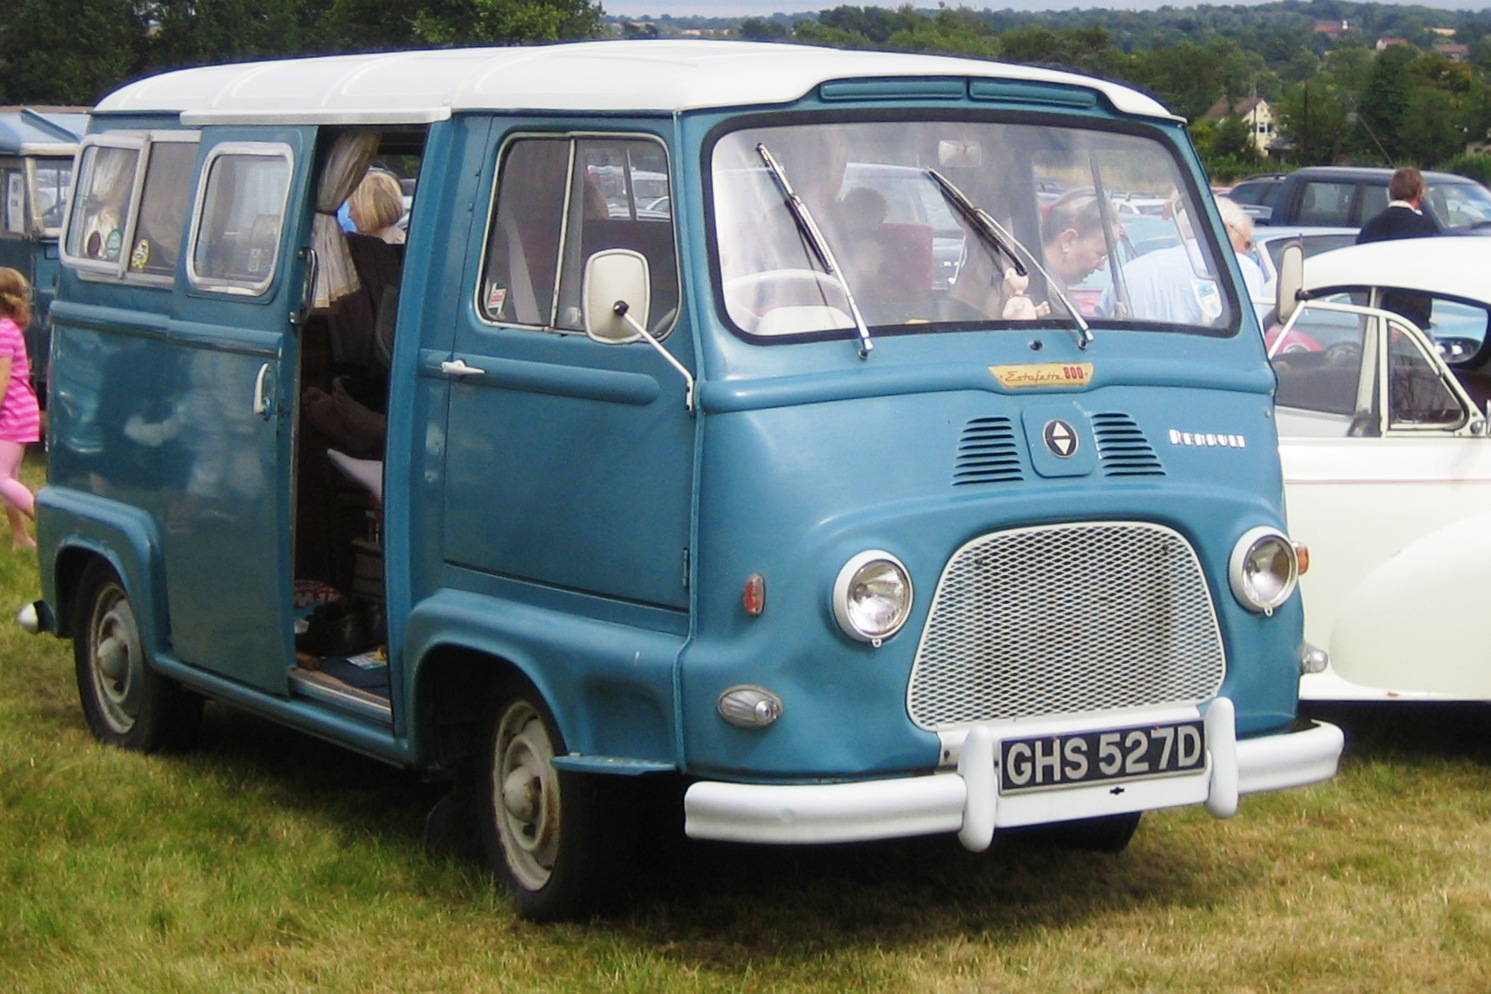 renault estafette 60 van high roof cafe legal eligor ebay. Black Bedroom Furniture Sets. Home Design Ideas